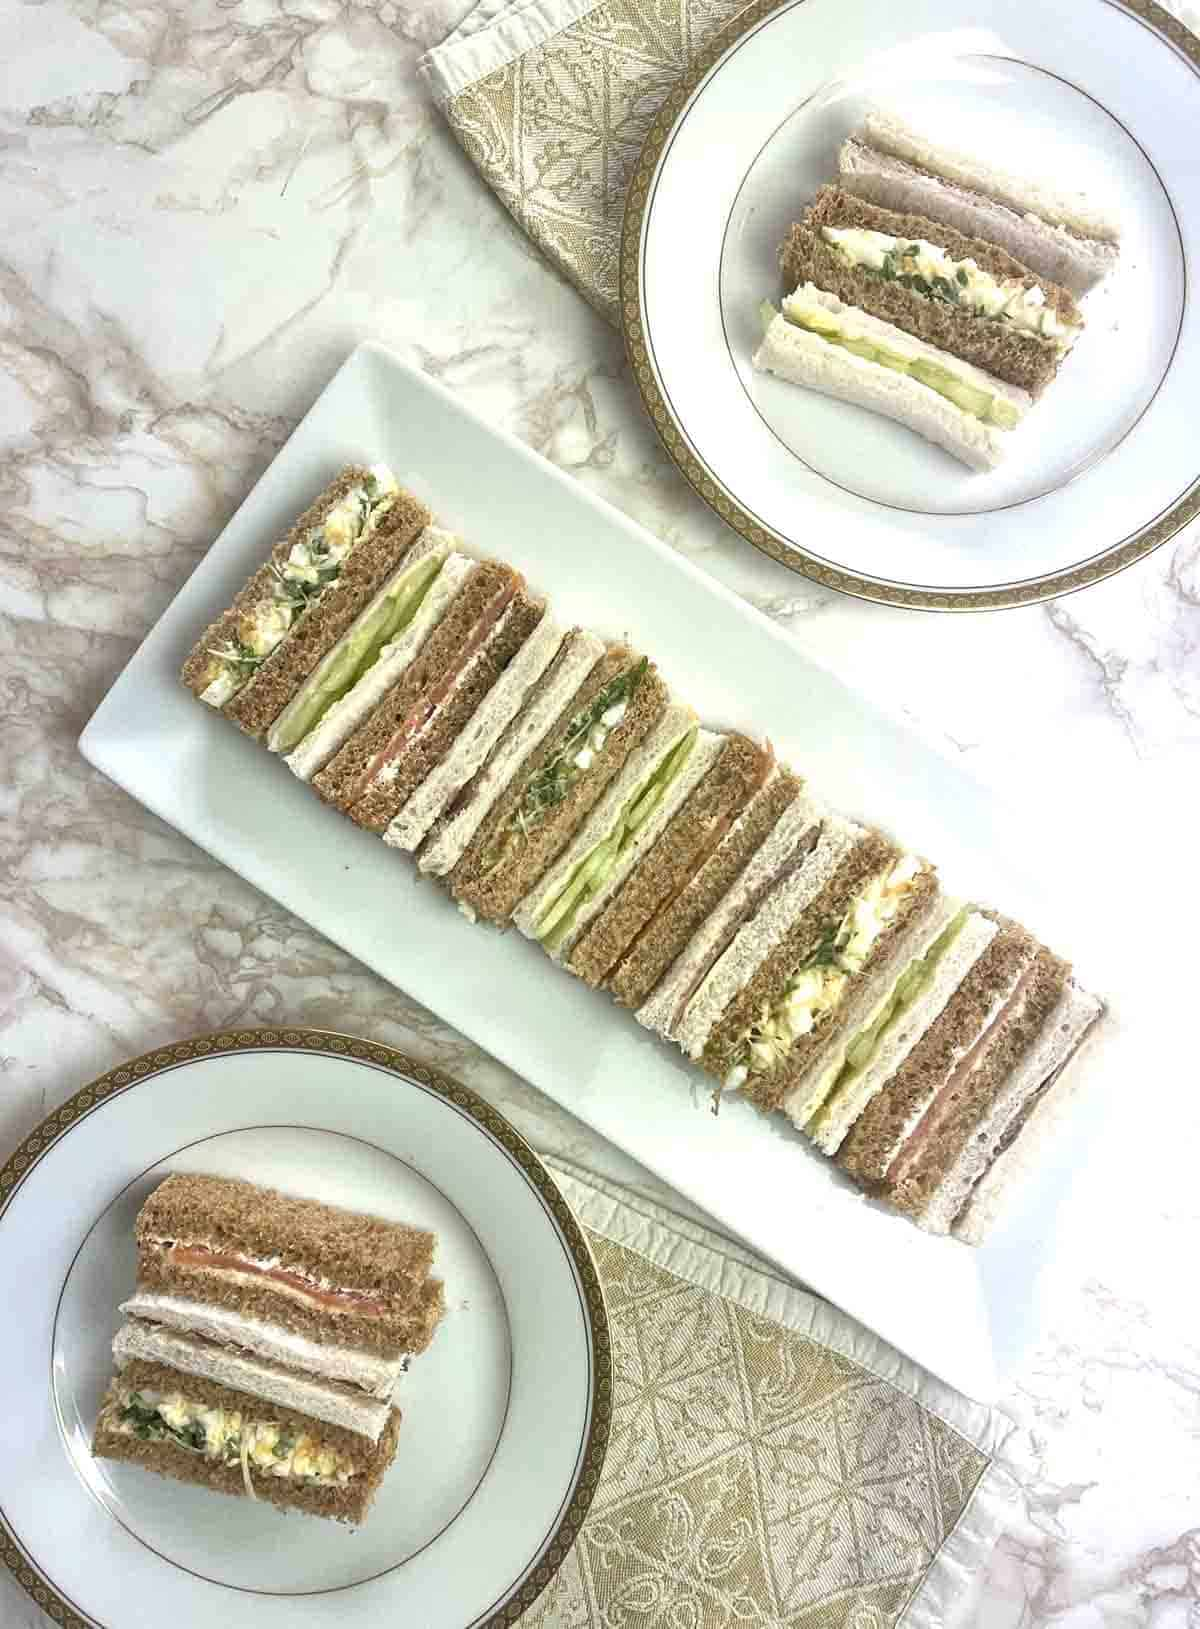 long plate of  finger sandwiches in rows and plates to the side with three sandwiches on.